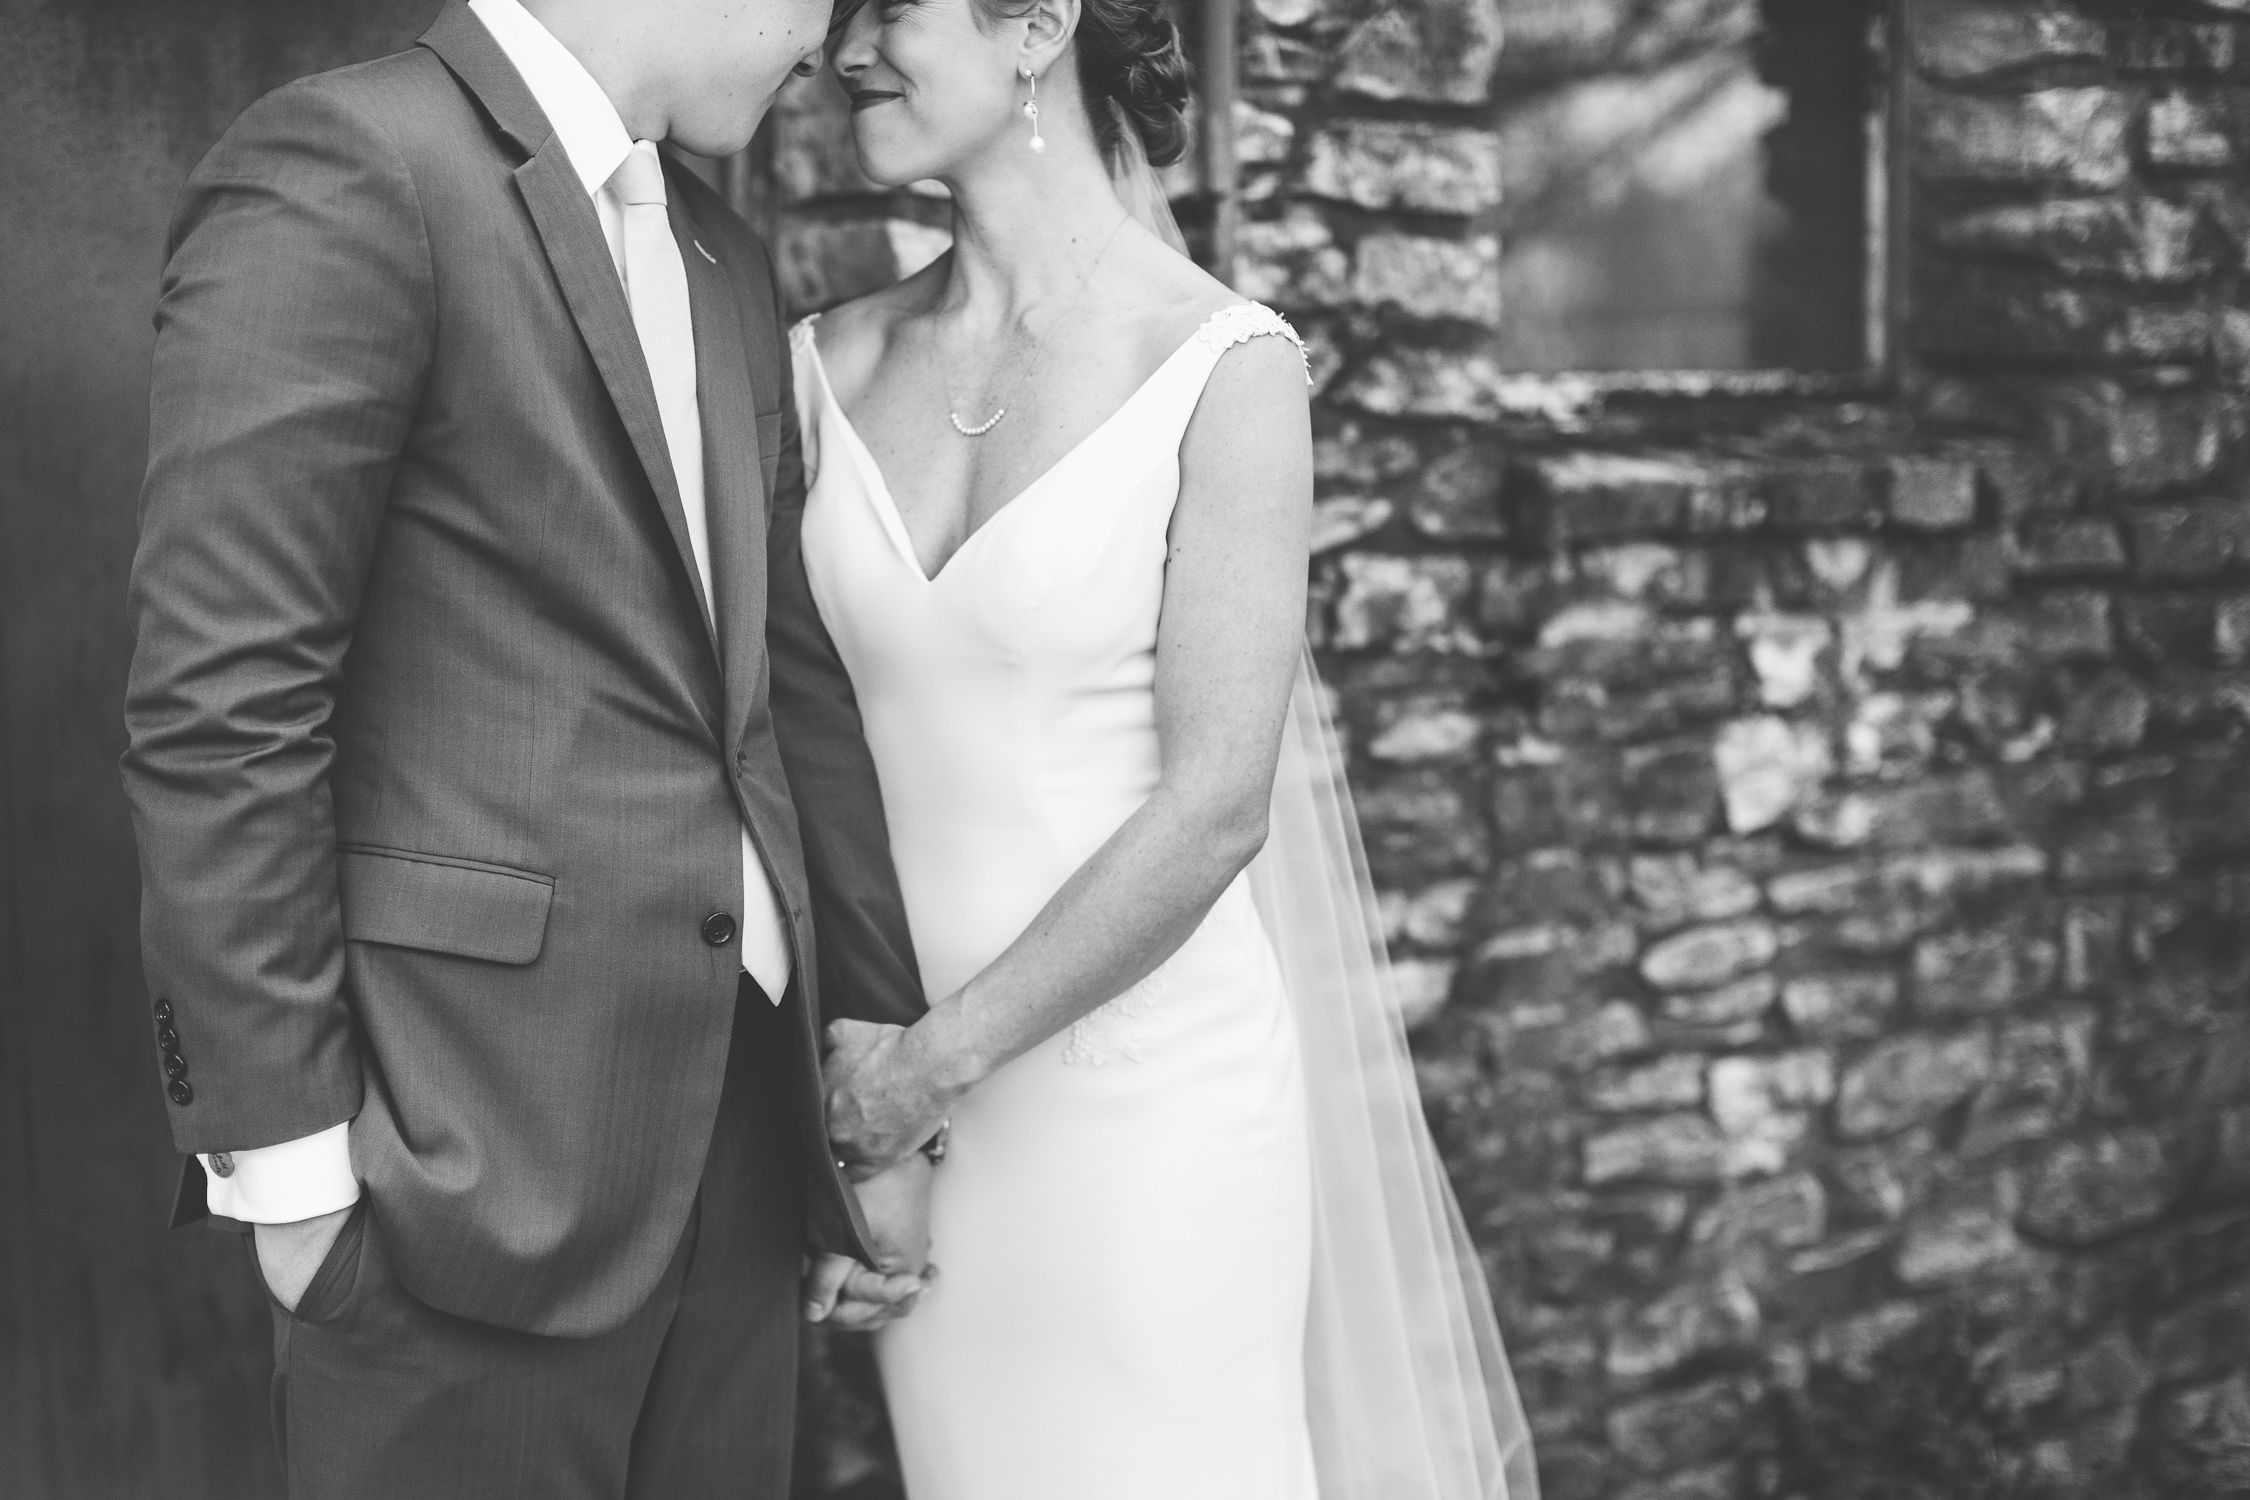 Knoxville Botanical Gardens Wedding poses, outdoor, country, estate, church, rustic, creative, romantic, details, spring, summer, indoor, artistic, editorial, natural, light and airy, natural light, ideas, passion, photoshoot, art, inspiration, beautiful, lighting, dress, love, evening, black and white